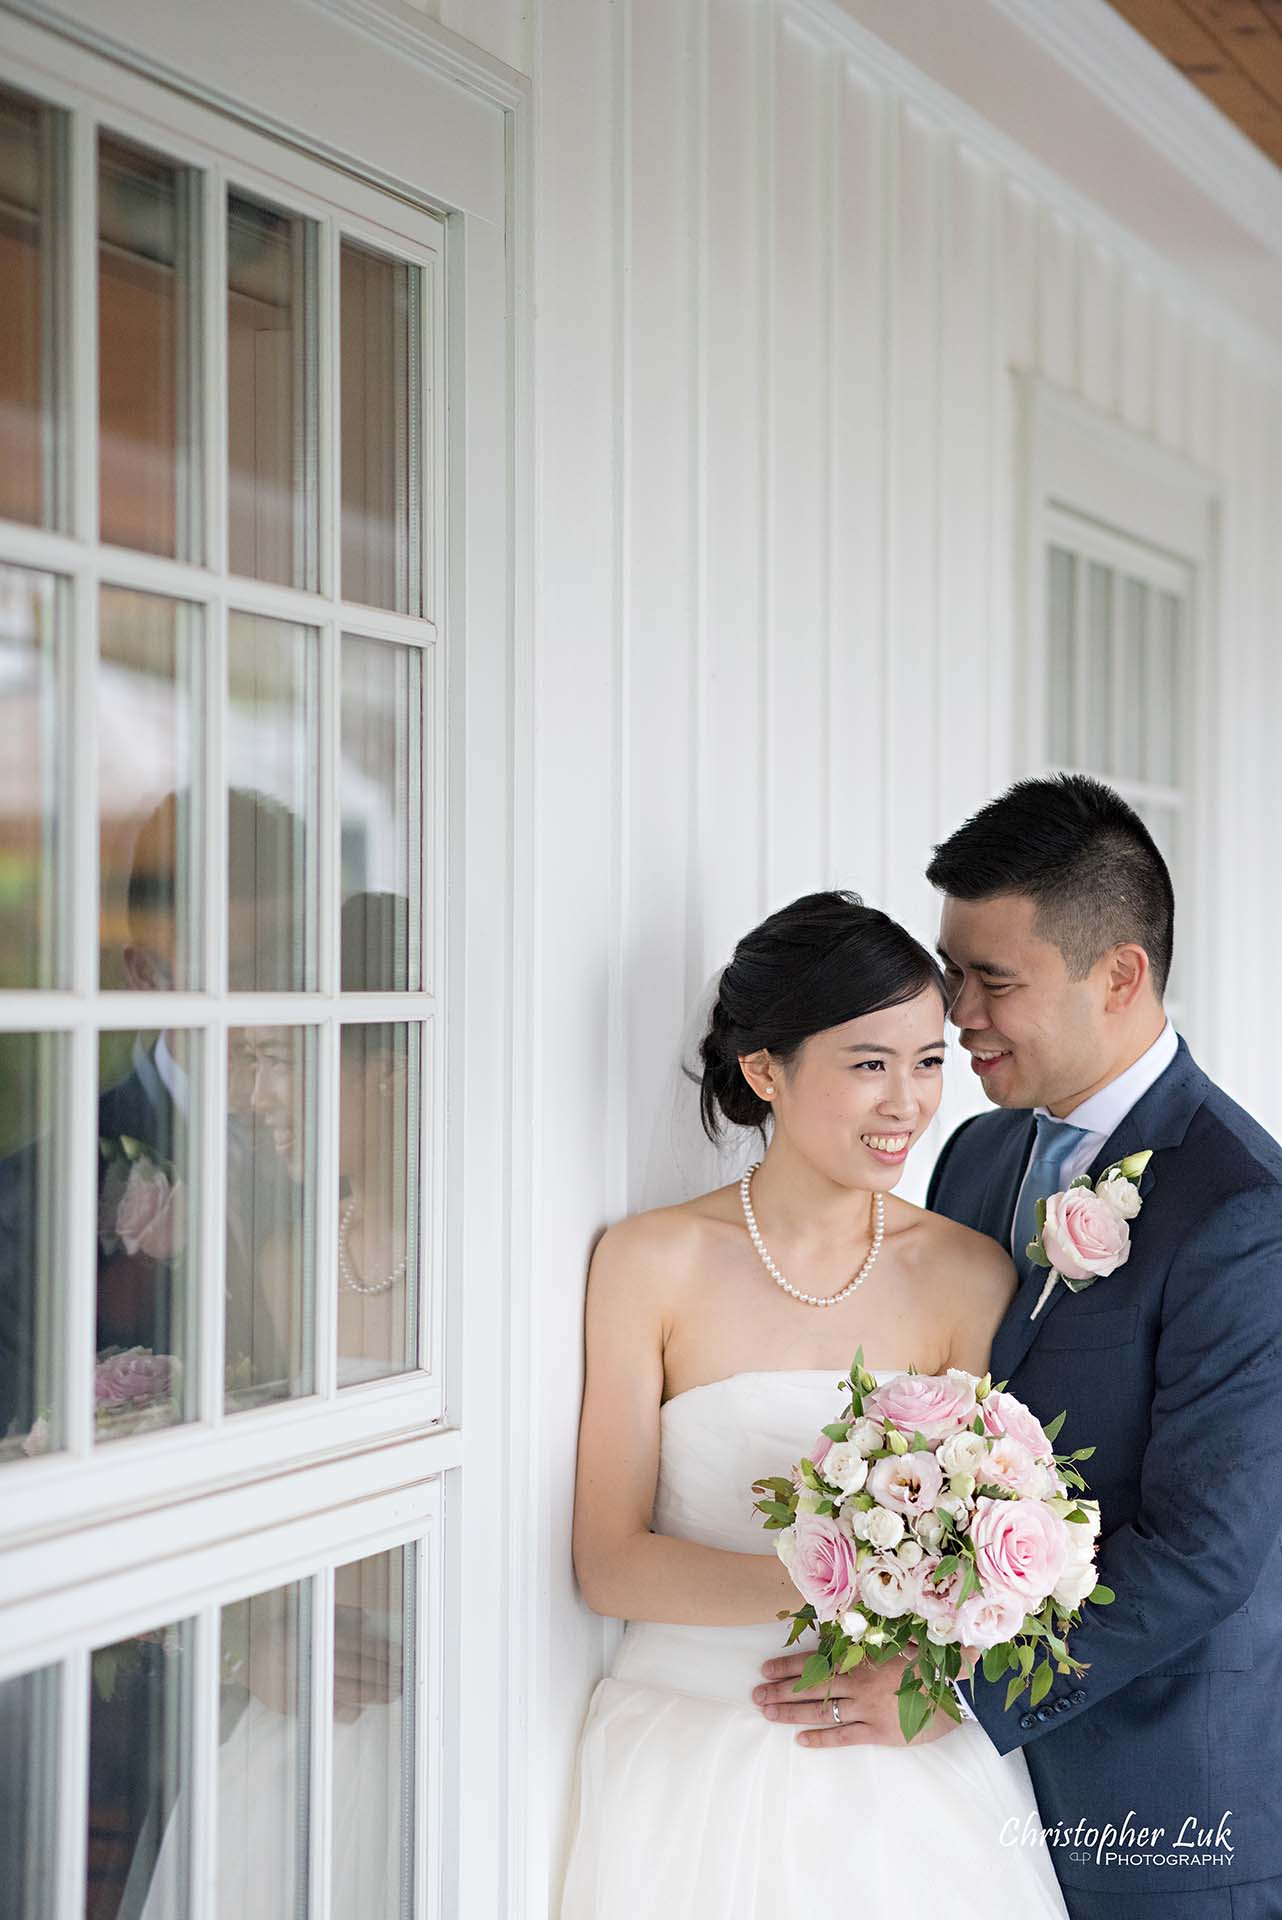 Christopher Luk Toronto Wedding Photographer Angus Glen Golf Club Markham Victoria Room Kennedy Loft Main Historic Estate Building Entrance Together Natural Candid Photojournalistic Bride Groom White Wall Window Reflection Intimate Hug